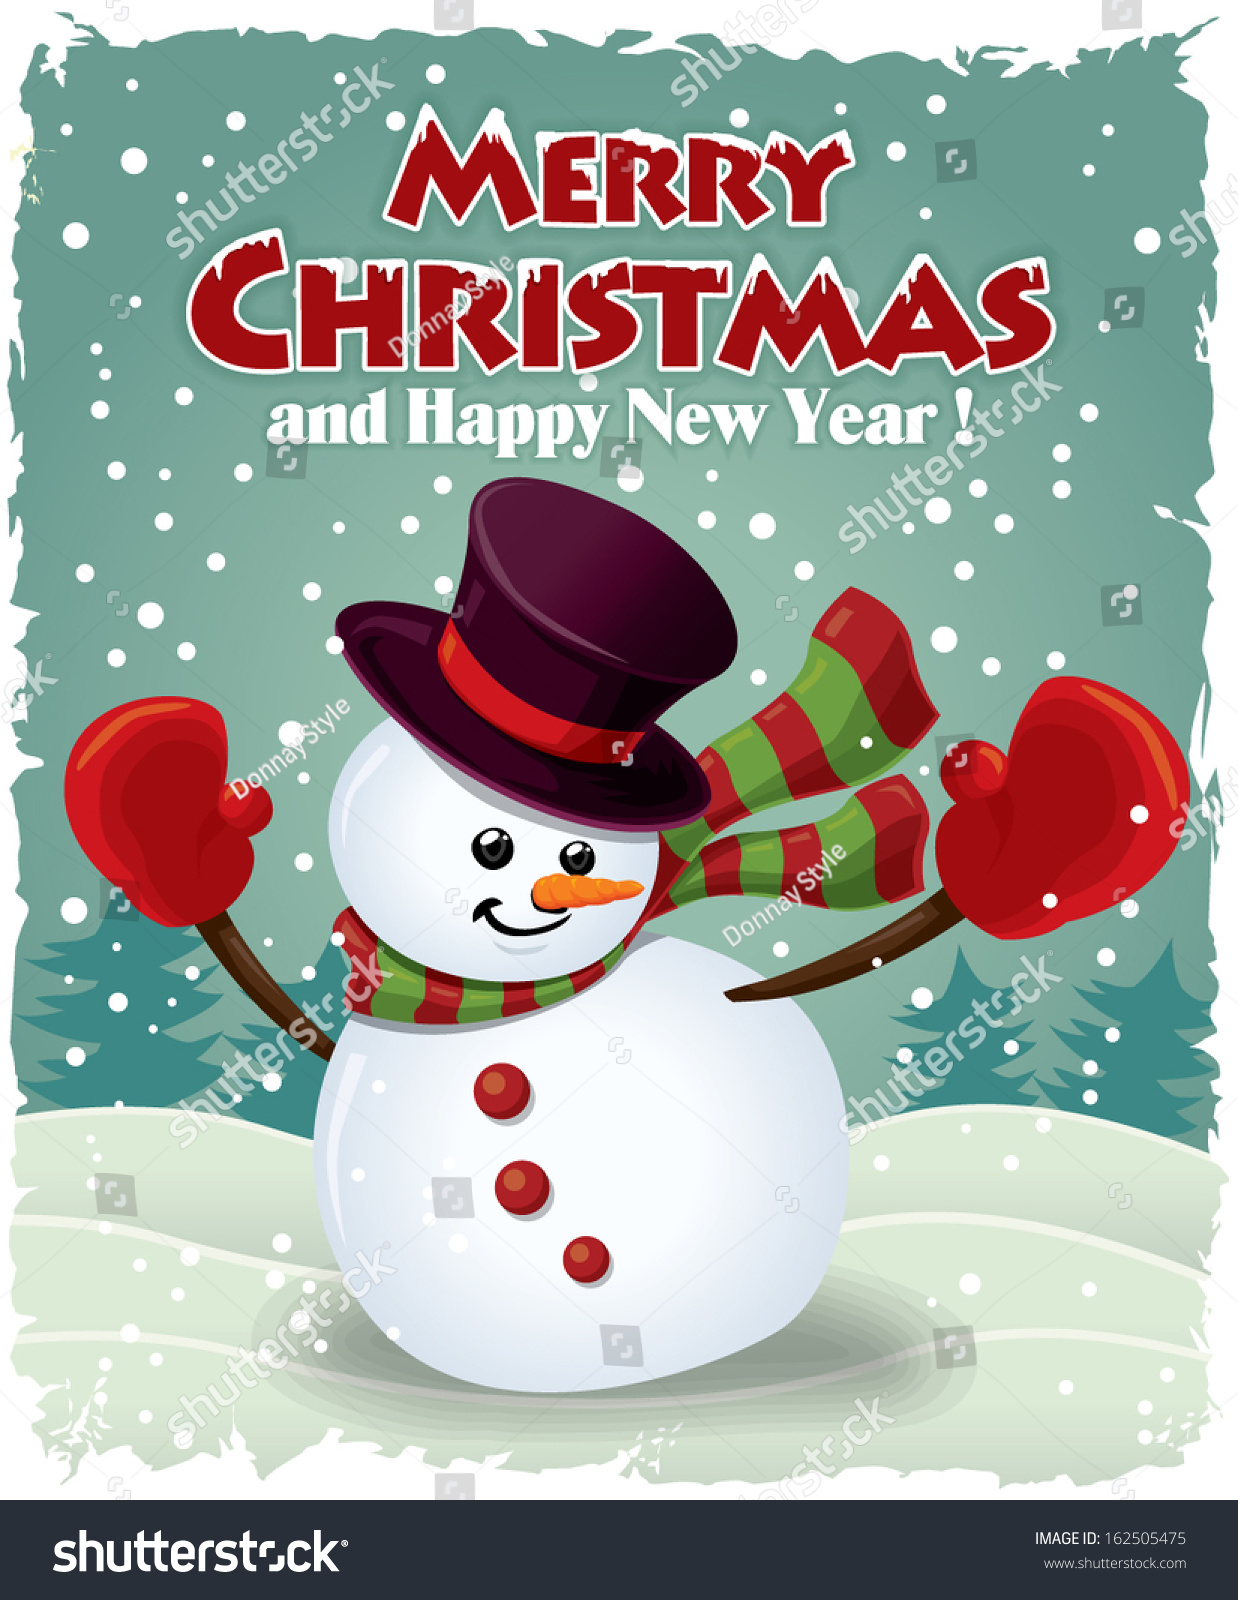 Vintage Christmas Poster Design With Snowman Stock Vector